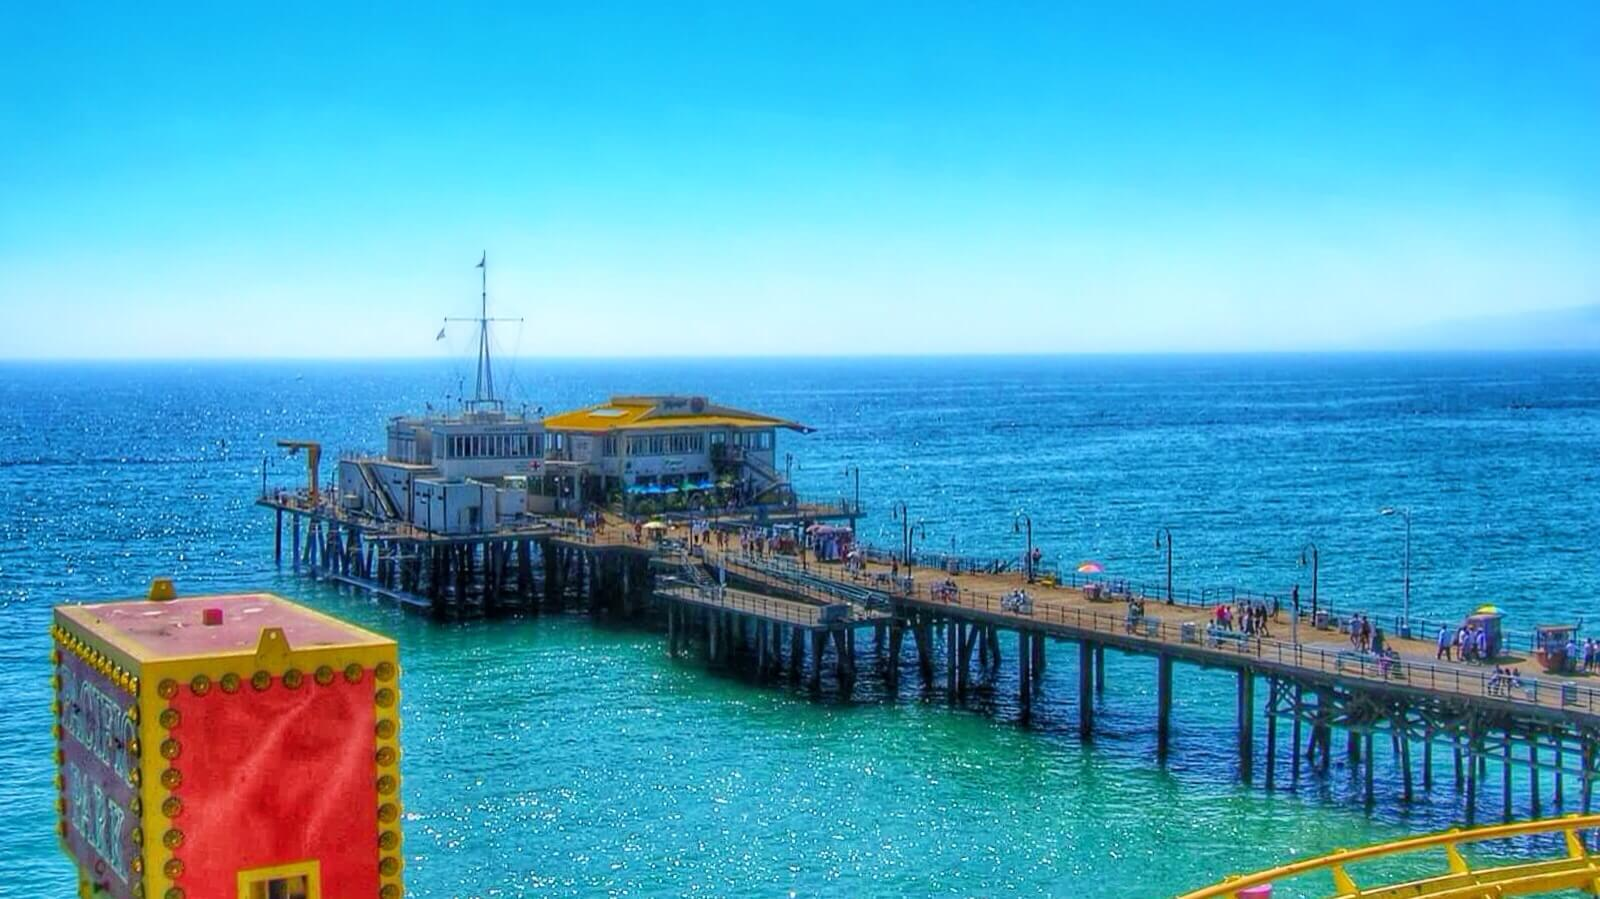 Best California fishing spots - Santa Monica Pier